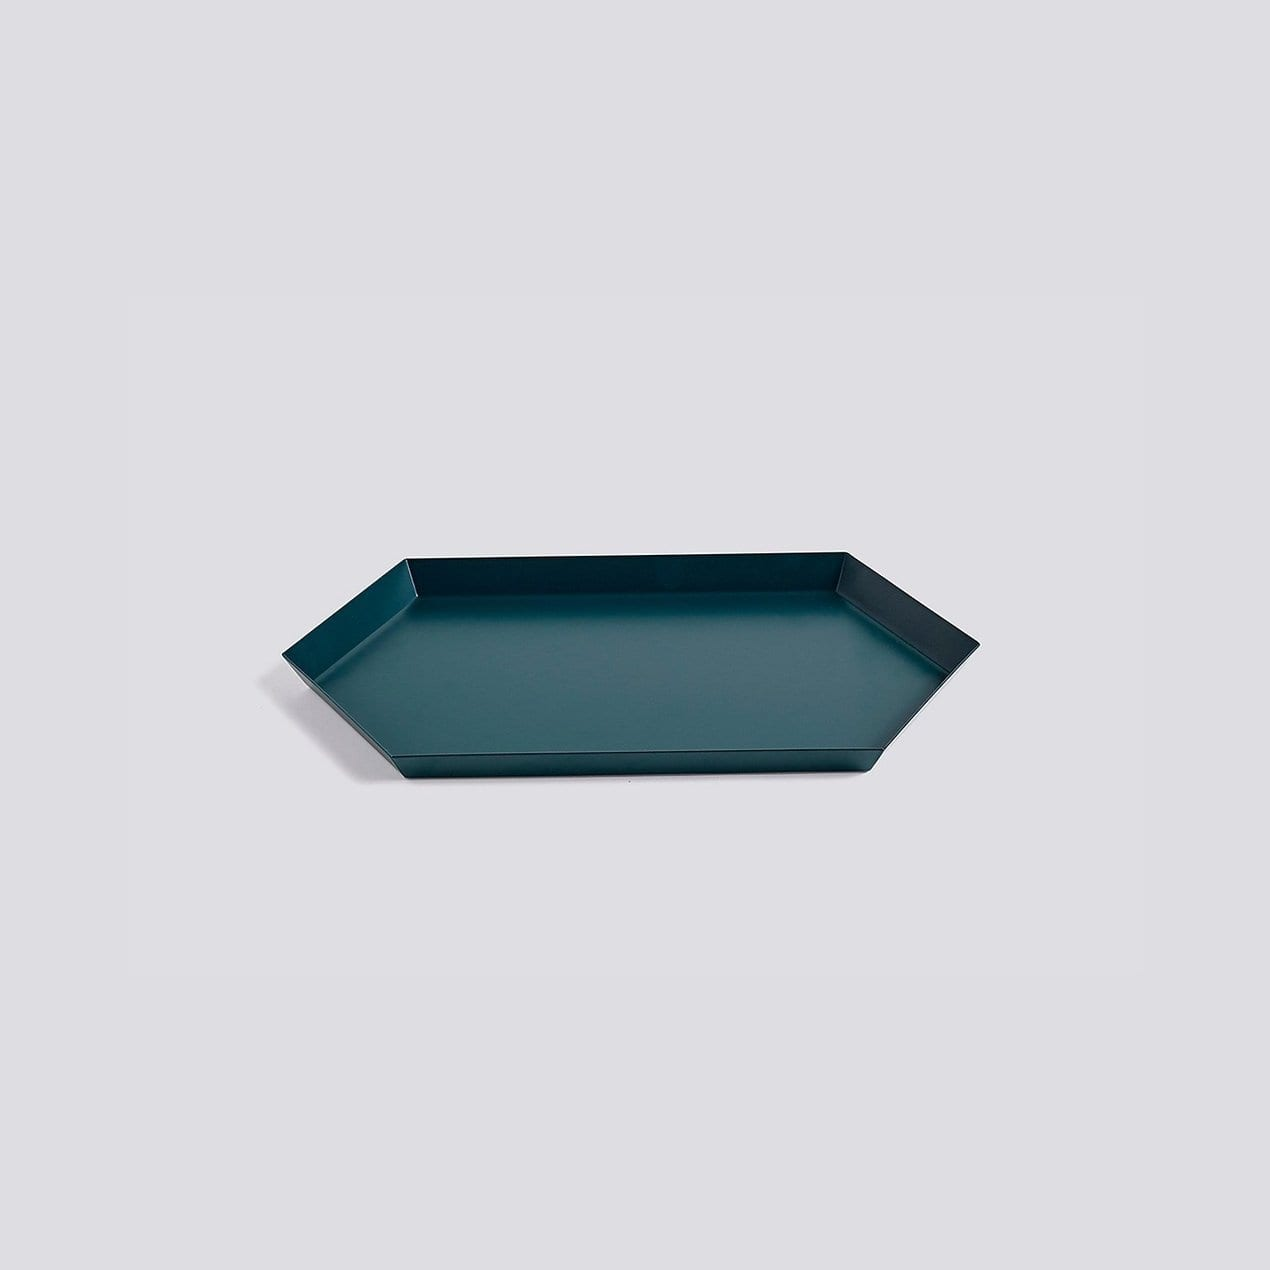 Medium Kaleido Tray / Neighborhood Goods